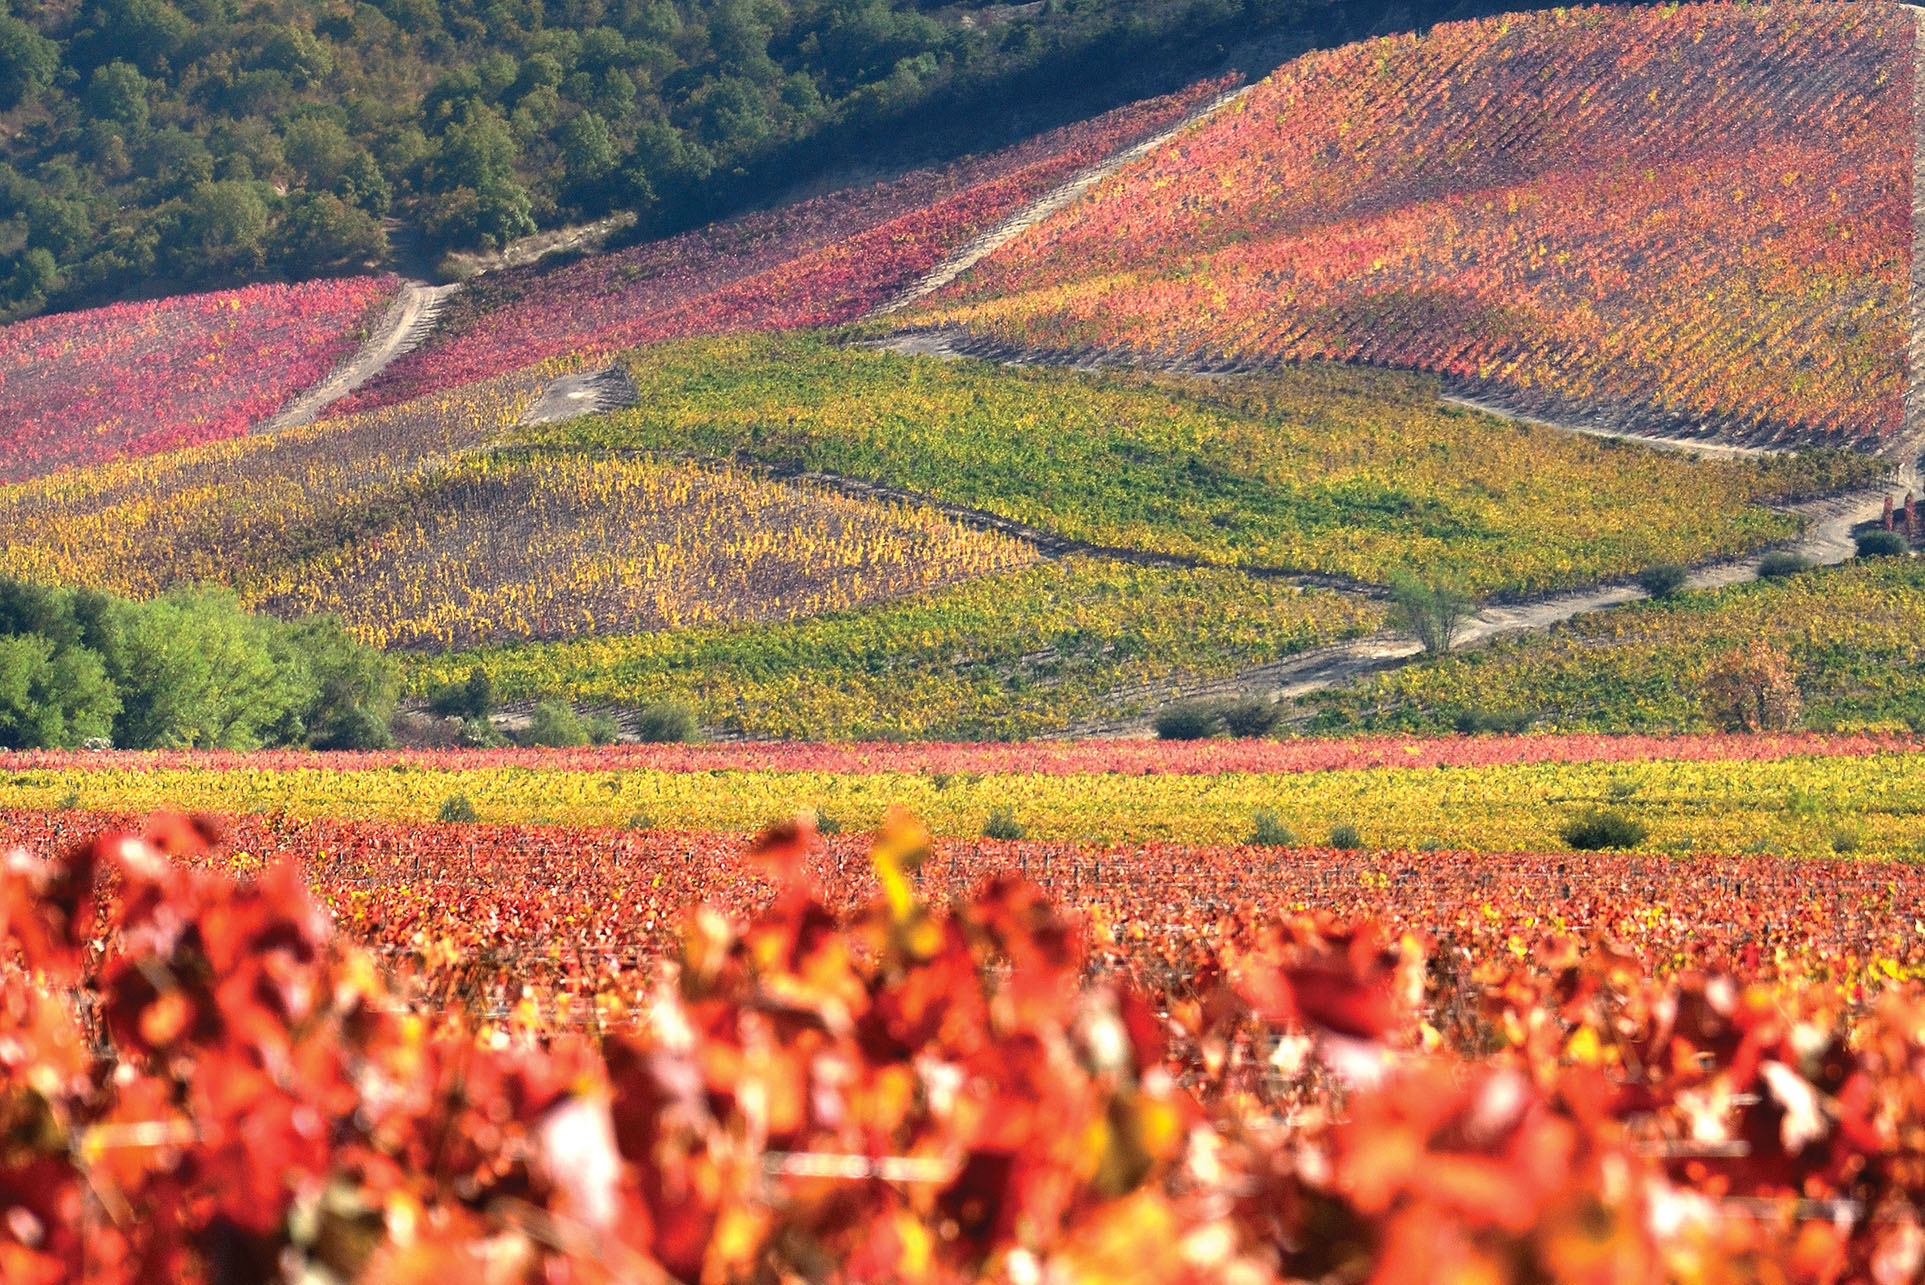 The vibrant autumn colors of Lapostolle Vineyard in Chile, certified as both organic and biodynamic. (Photo by Jorge León Cabello.)